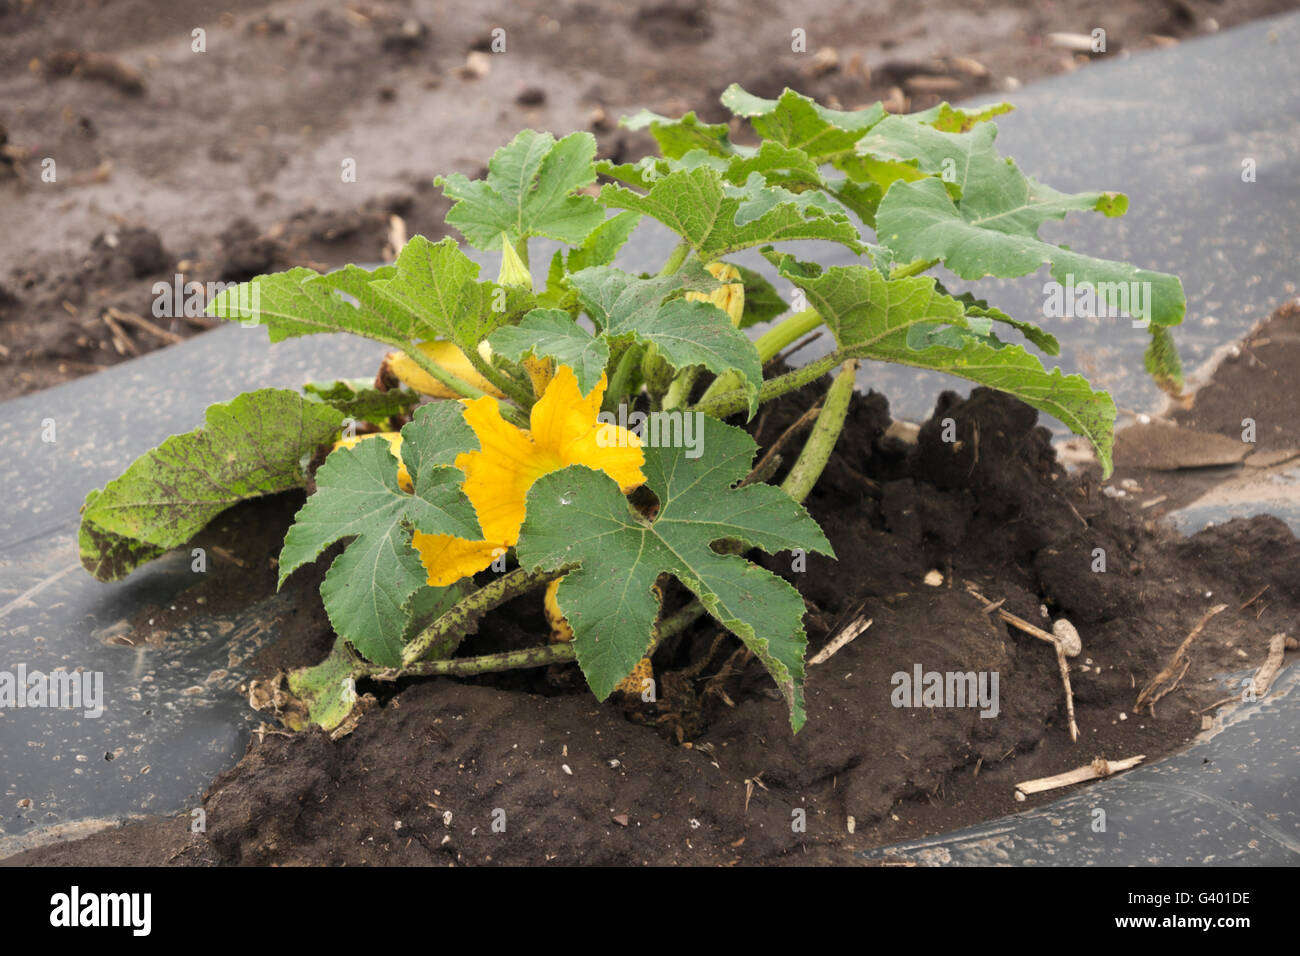 Summer squash growing under plastic sheets on a northern Illinois farm. - Stock Image